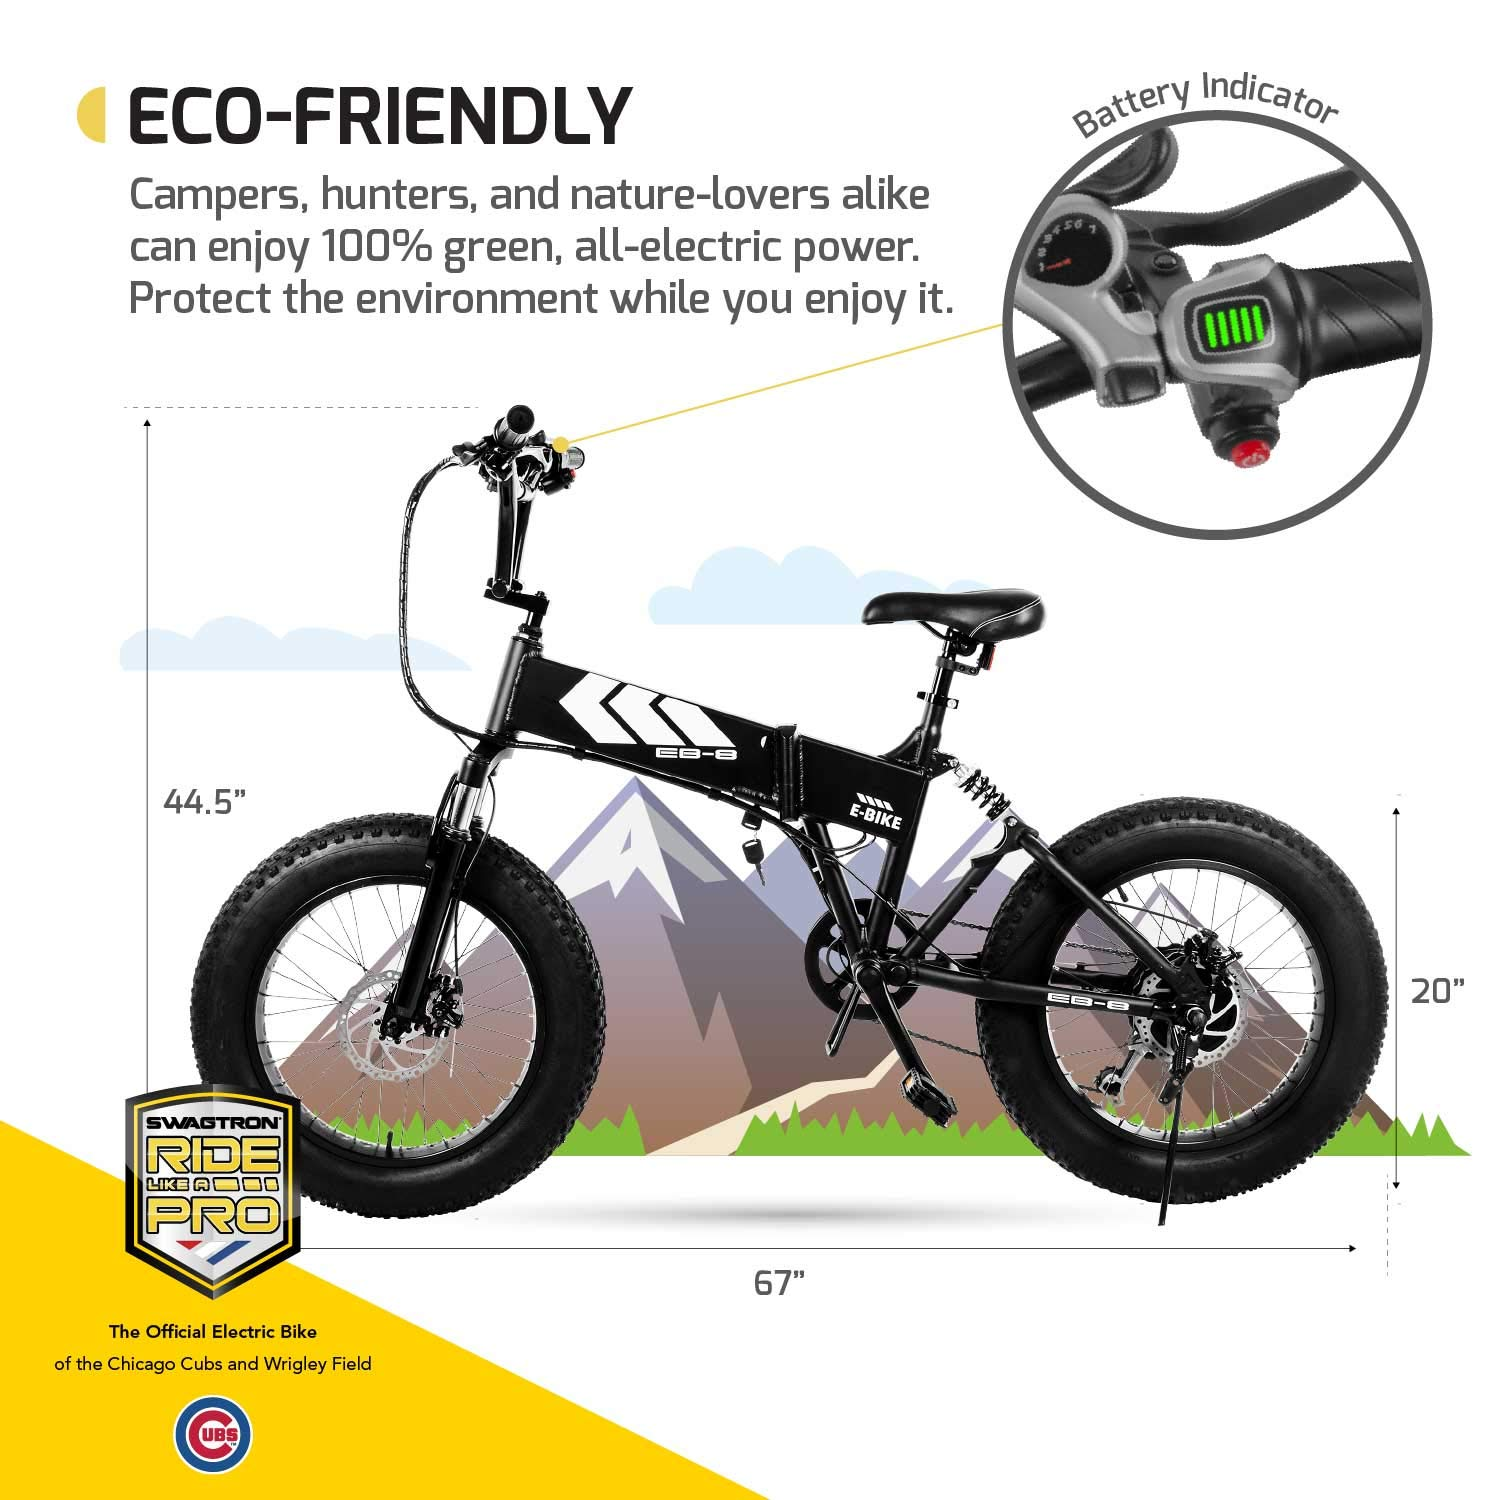 5f562758ccd Amazon.com : Swagtron EB-8 Outlaw Fat Tire Electric Bike - Foldable  Off-Road Fat eBike 20-inch Wheels with Power Assist, Freehub and Shimano  7-Speed Gear ...